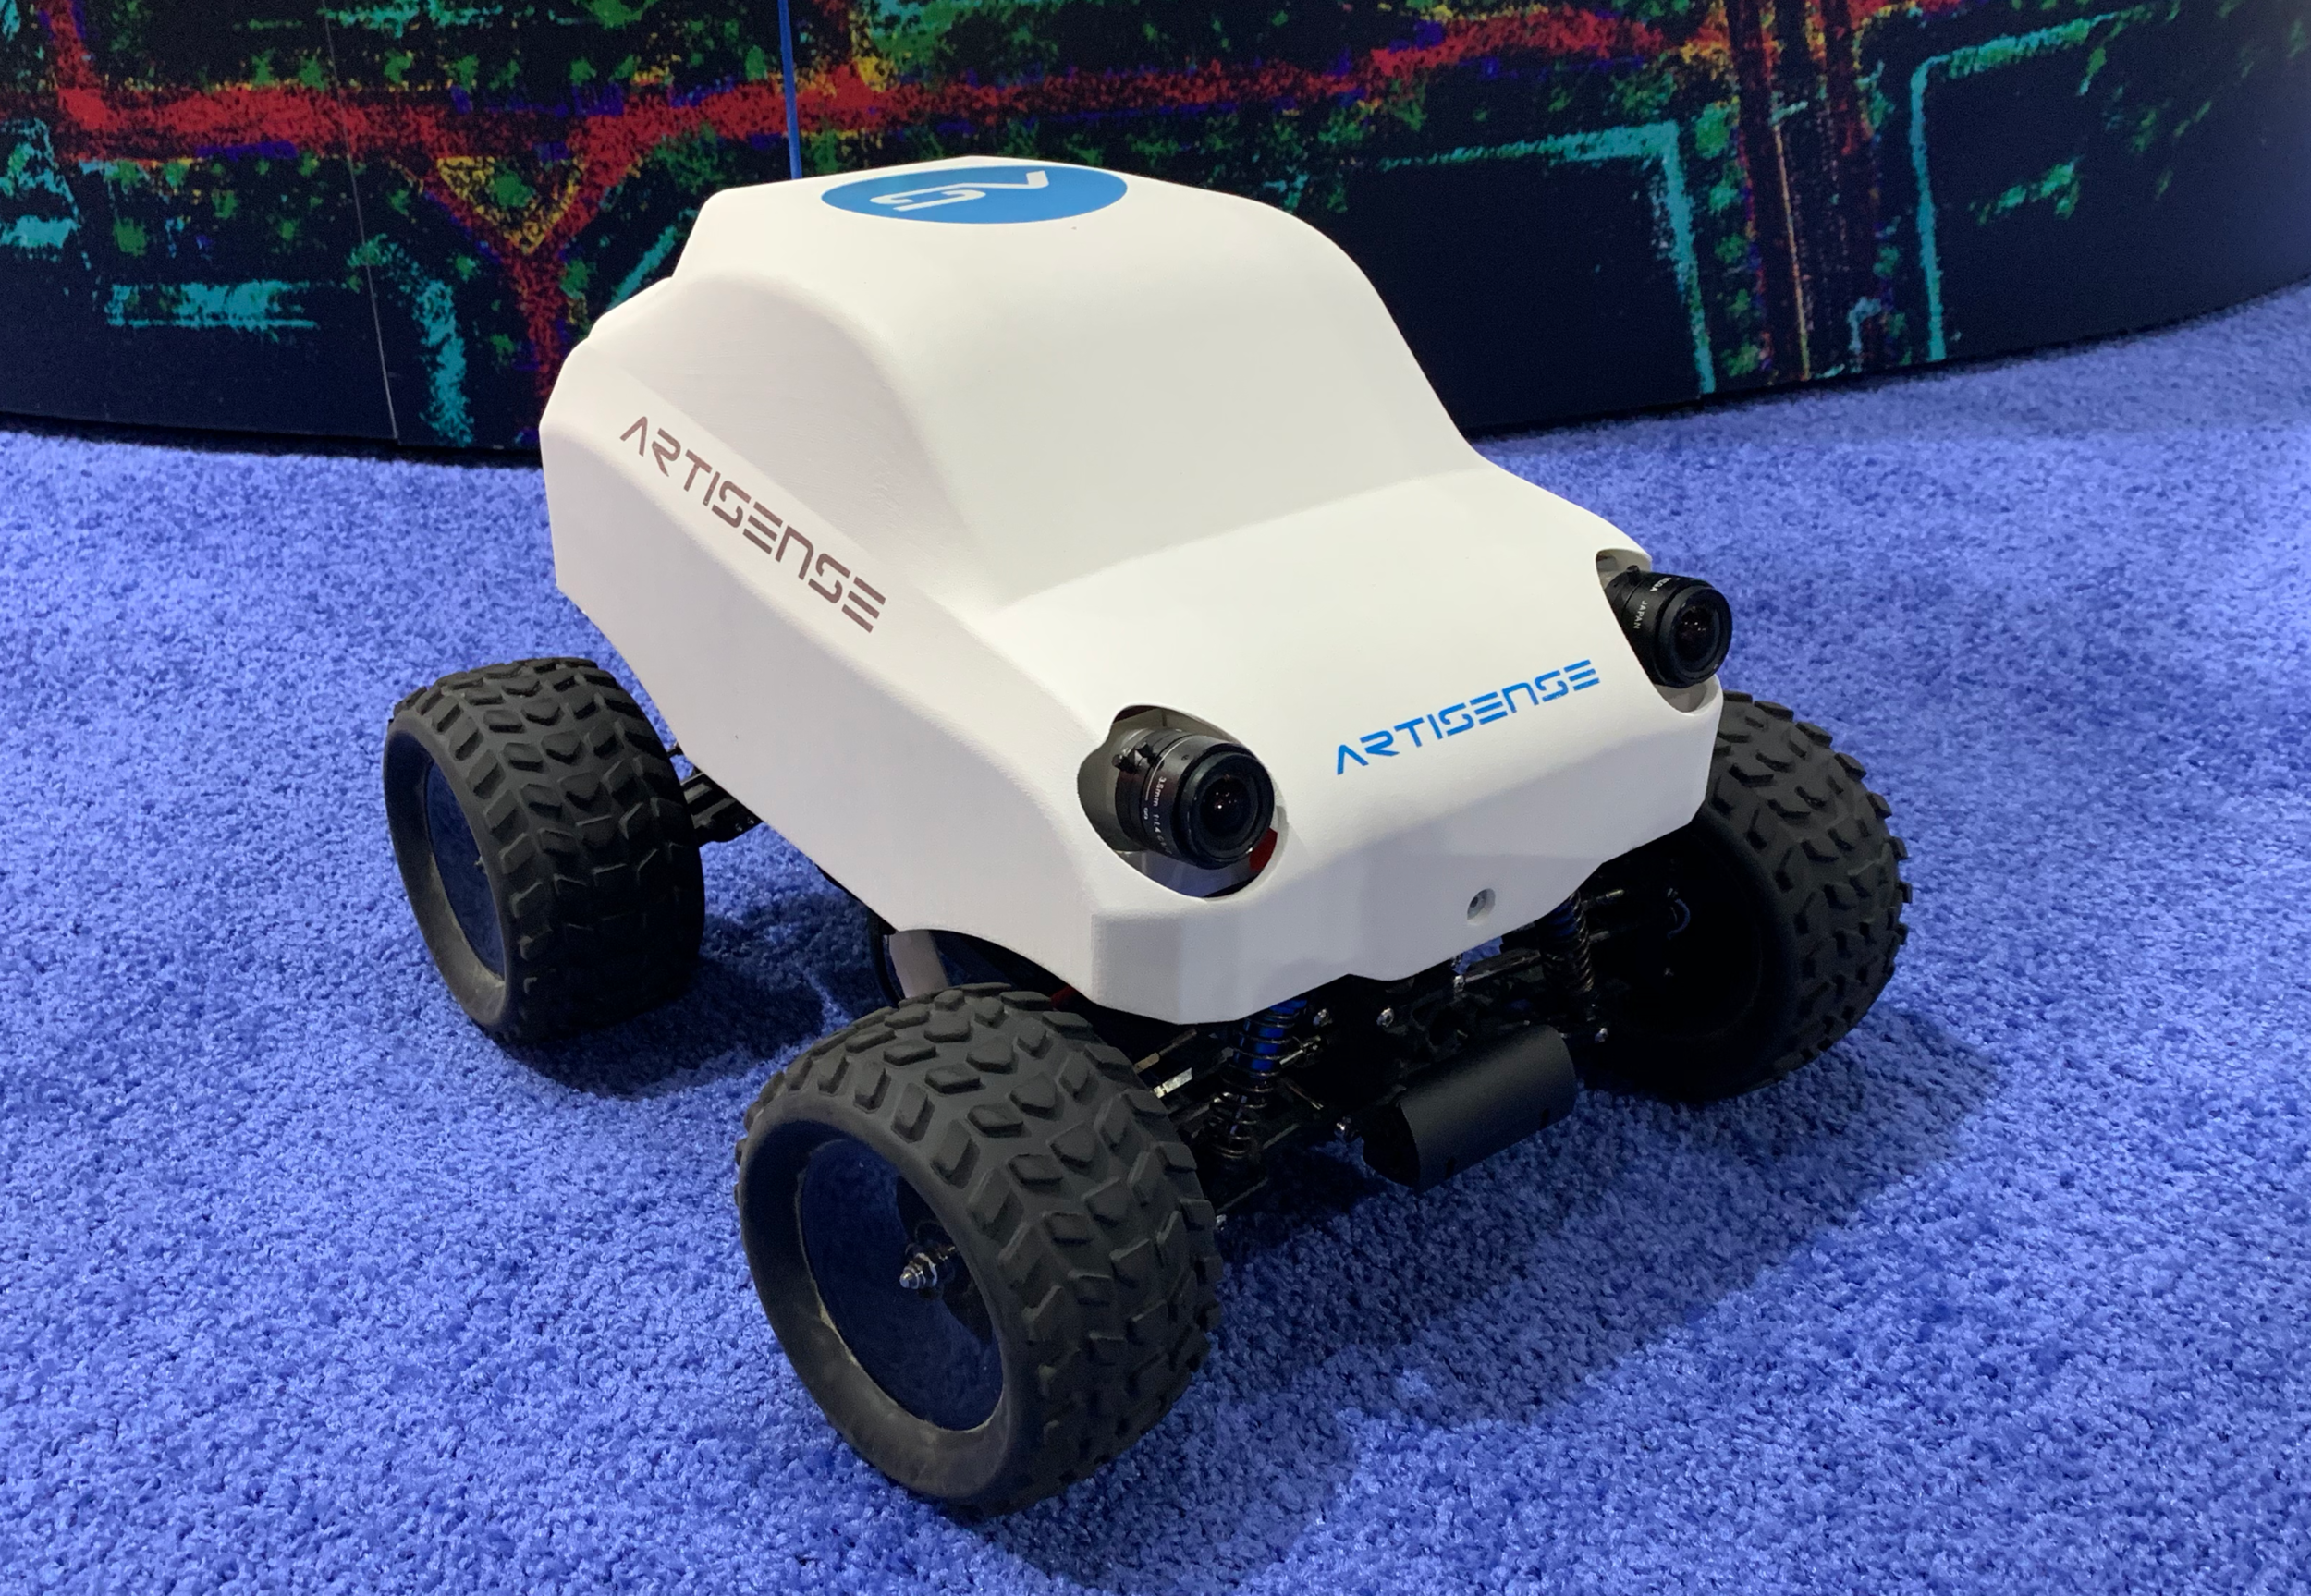 Mobile Robotics - Robust localization for mobile robots traversing outdoor, indoor or both environments. Artisense VINS meets the requirements towards small form factor, low compute and low TCO for mobile robotic applications in e.g. warehouses and manufacturing or delivery applications.